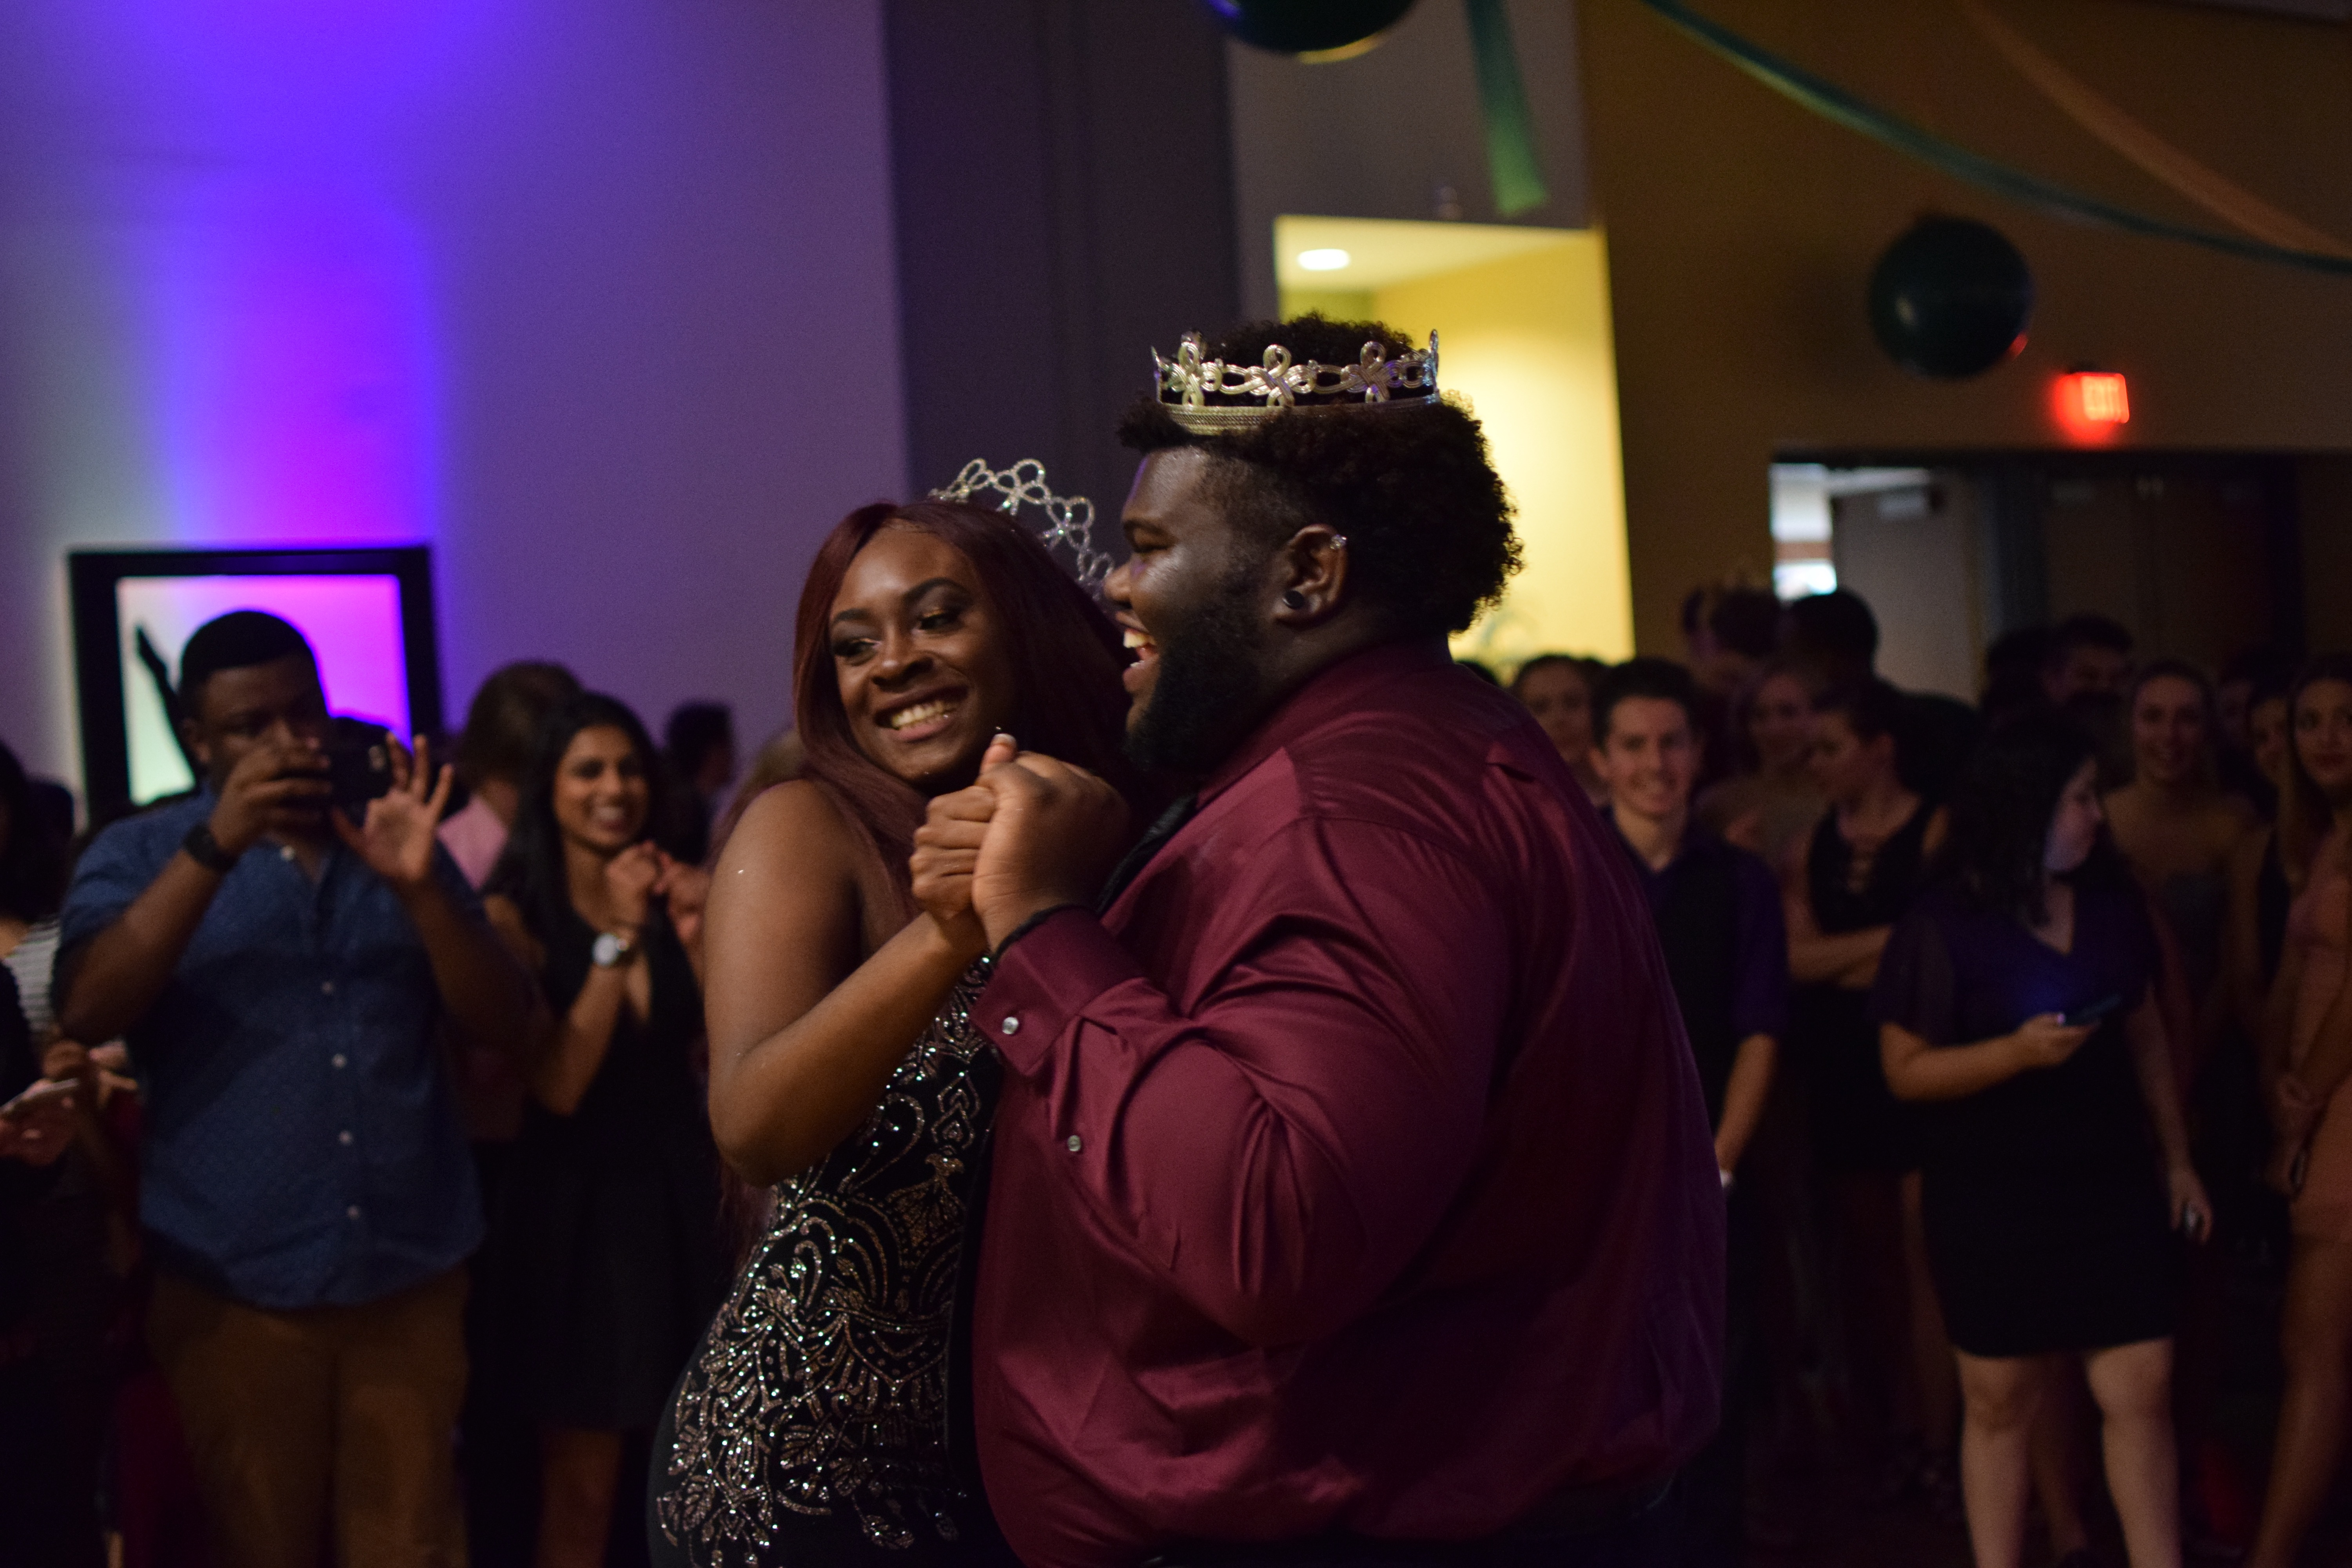 The king and queen have their day: Homecoming 2017